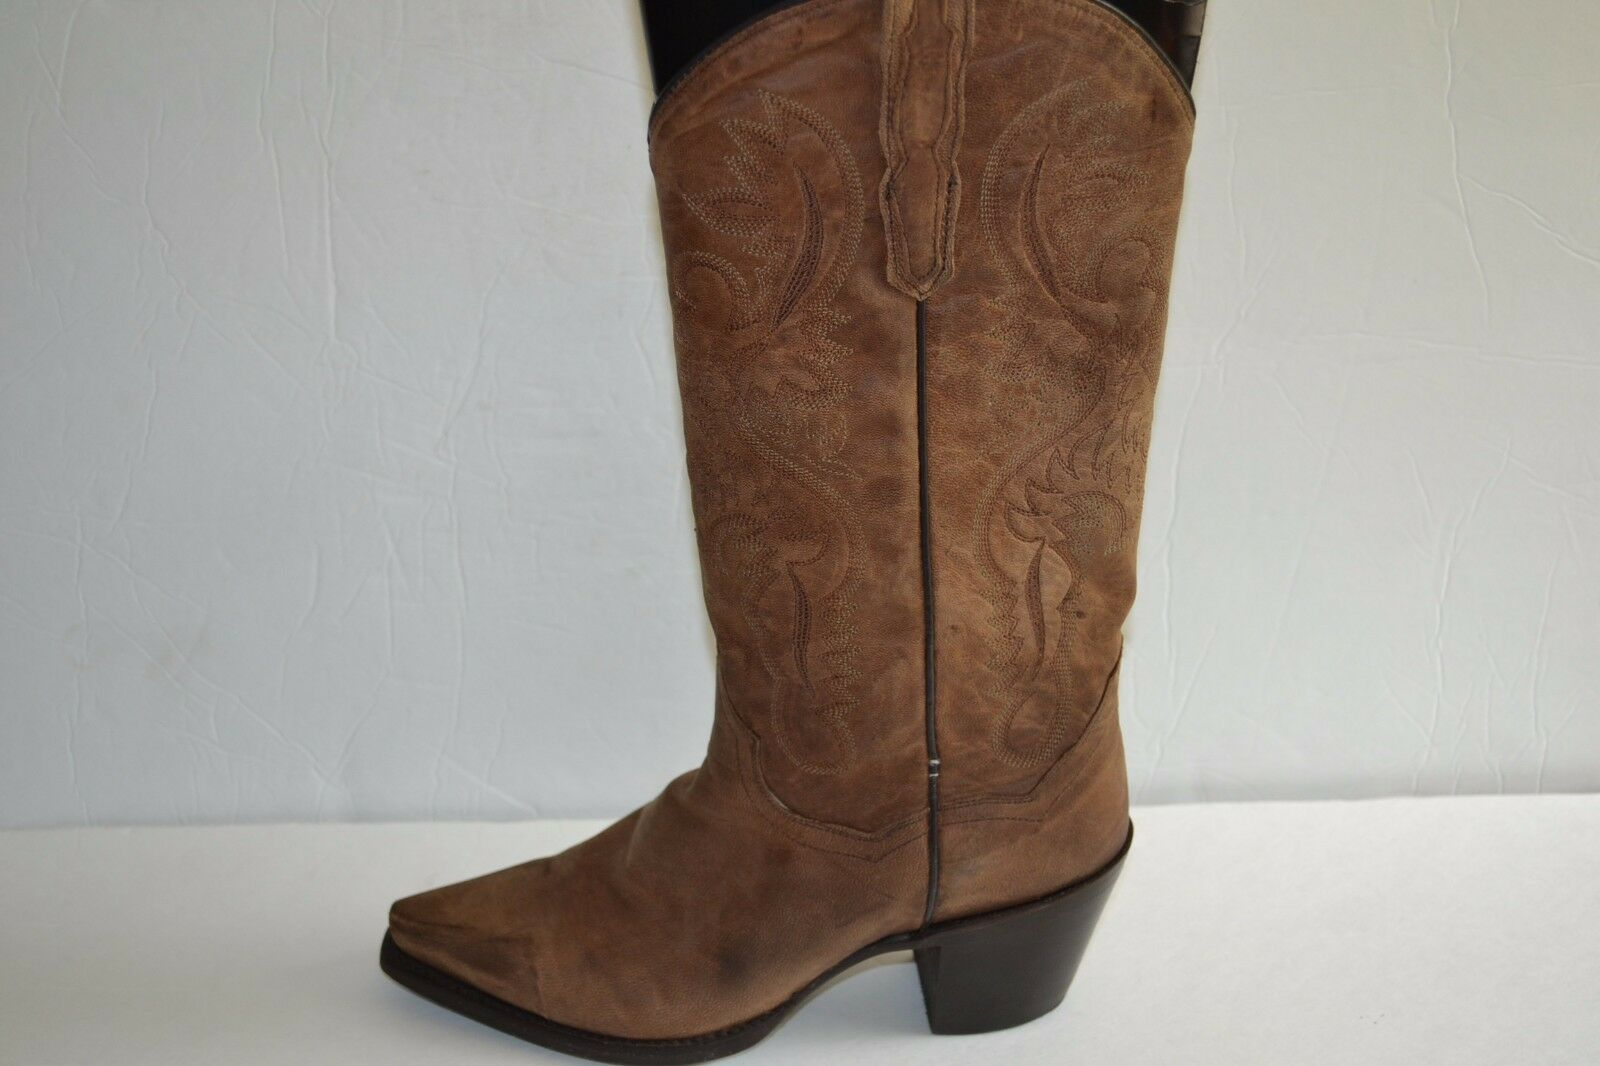 Dan Post Donna Cowgirl Boots Maria BROWN LEATHER WESTERN SNIP TOE DP3208 SZ 6.5